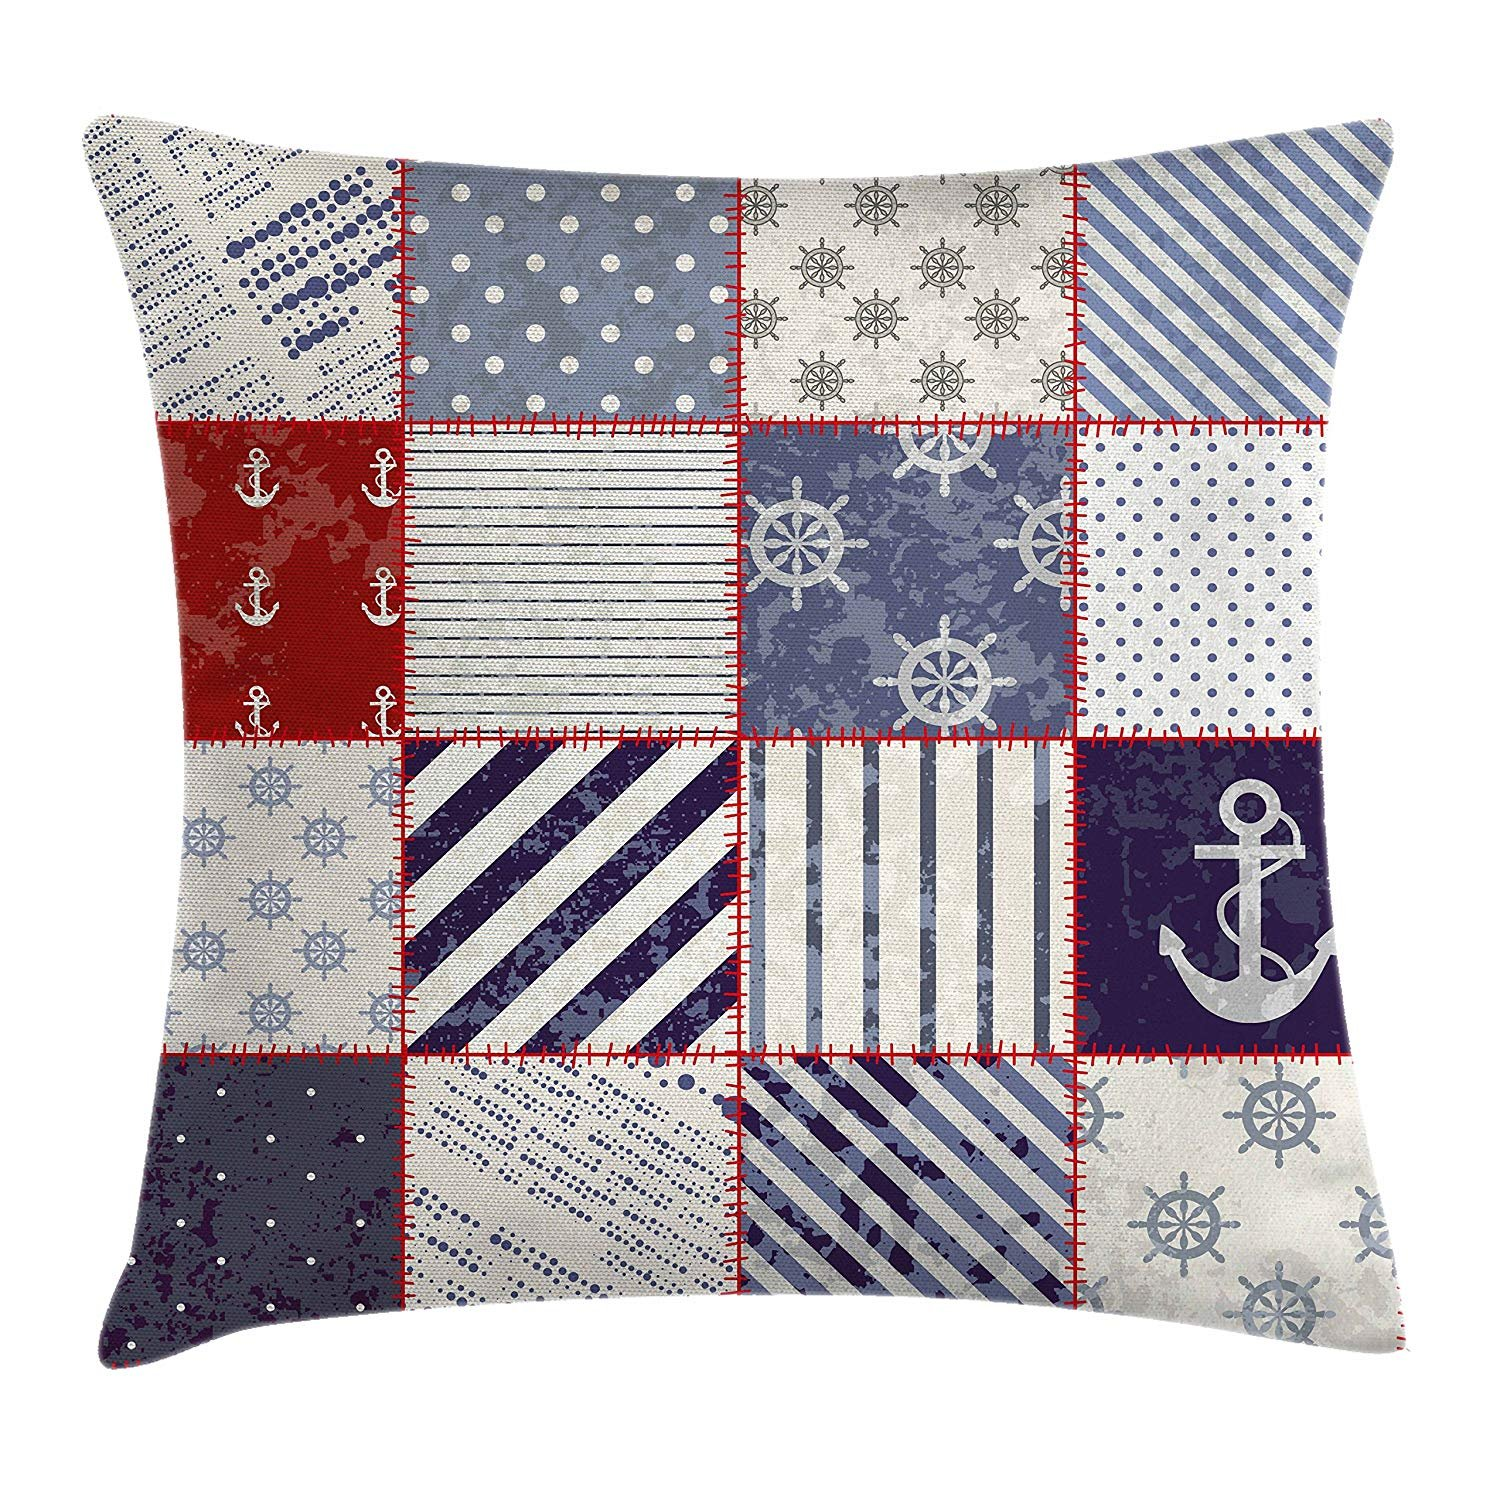 Farmhouse Decor Throw Pillow Cushion Cover, Marine and Nautical Life Design with Vintage Sailor Knots and Anchor Motifs, Decorative Square Accent Pillow Case, 18X18 inches, Beige Blue best bags